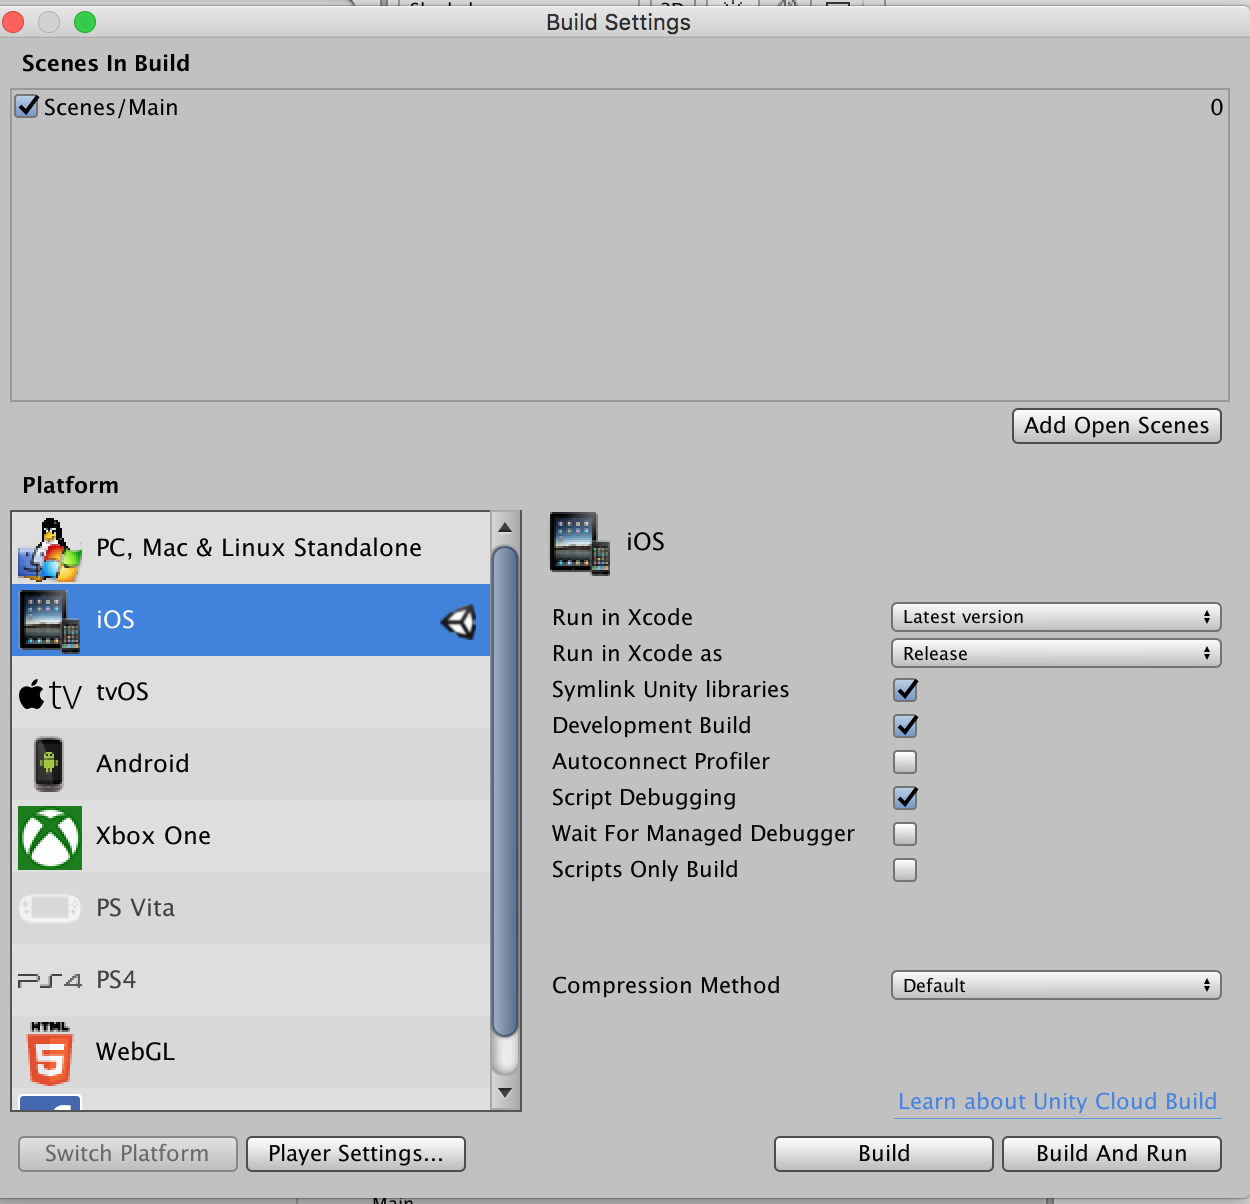 Cannot connect IL2CPP managed debugger to iPhone - Unity Forum